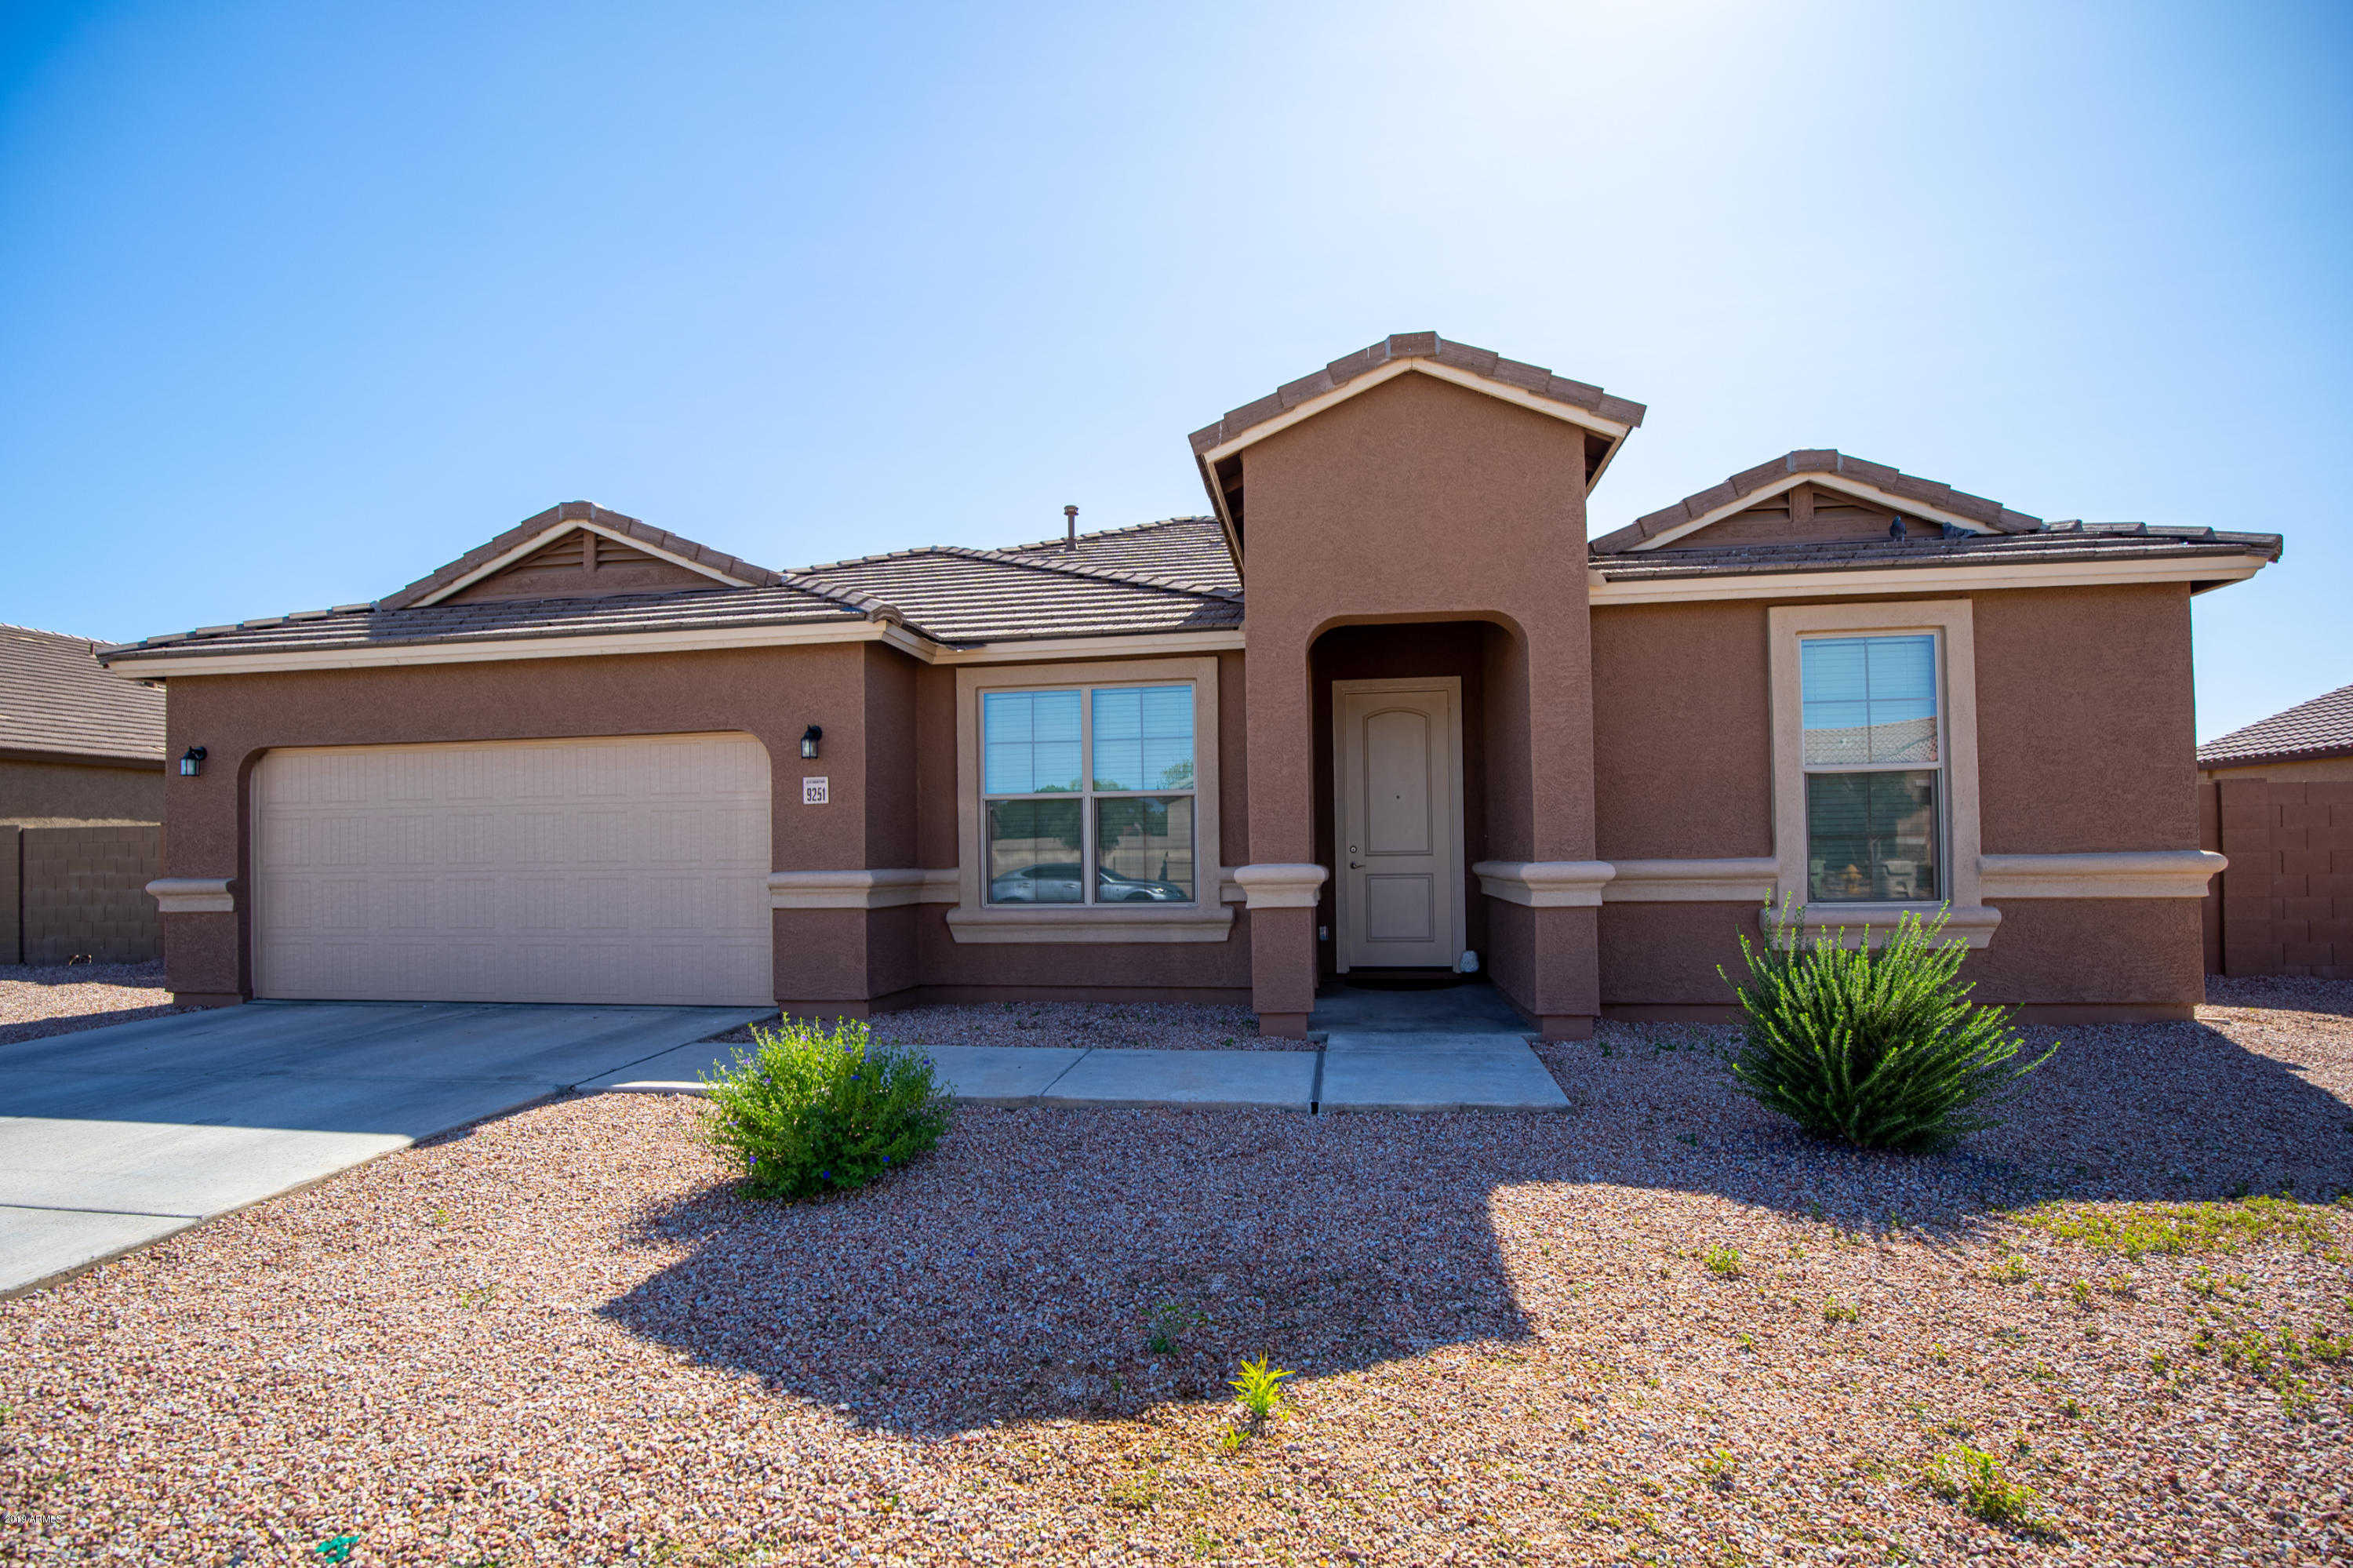 $379,900 - 4Br/3Ba - Home for Sale in Copper Cove Phase 1 Replat, Glendale